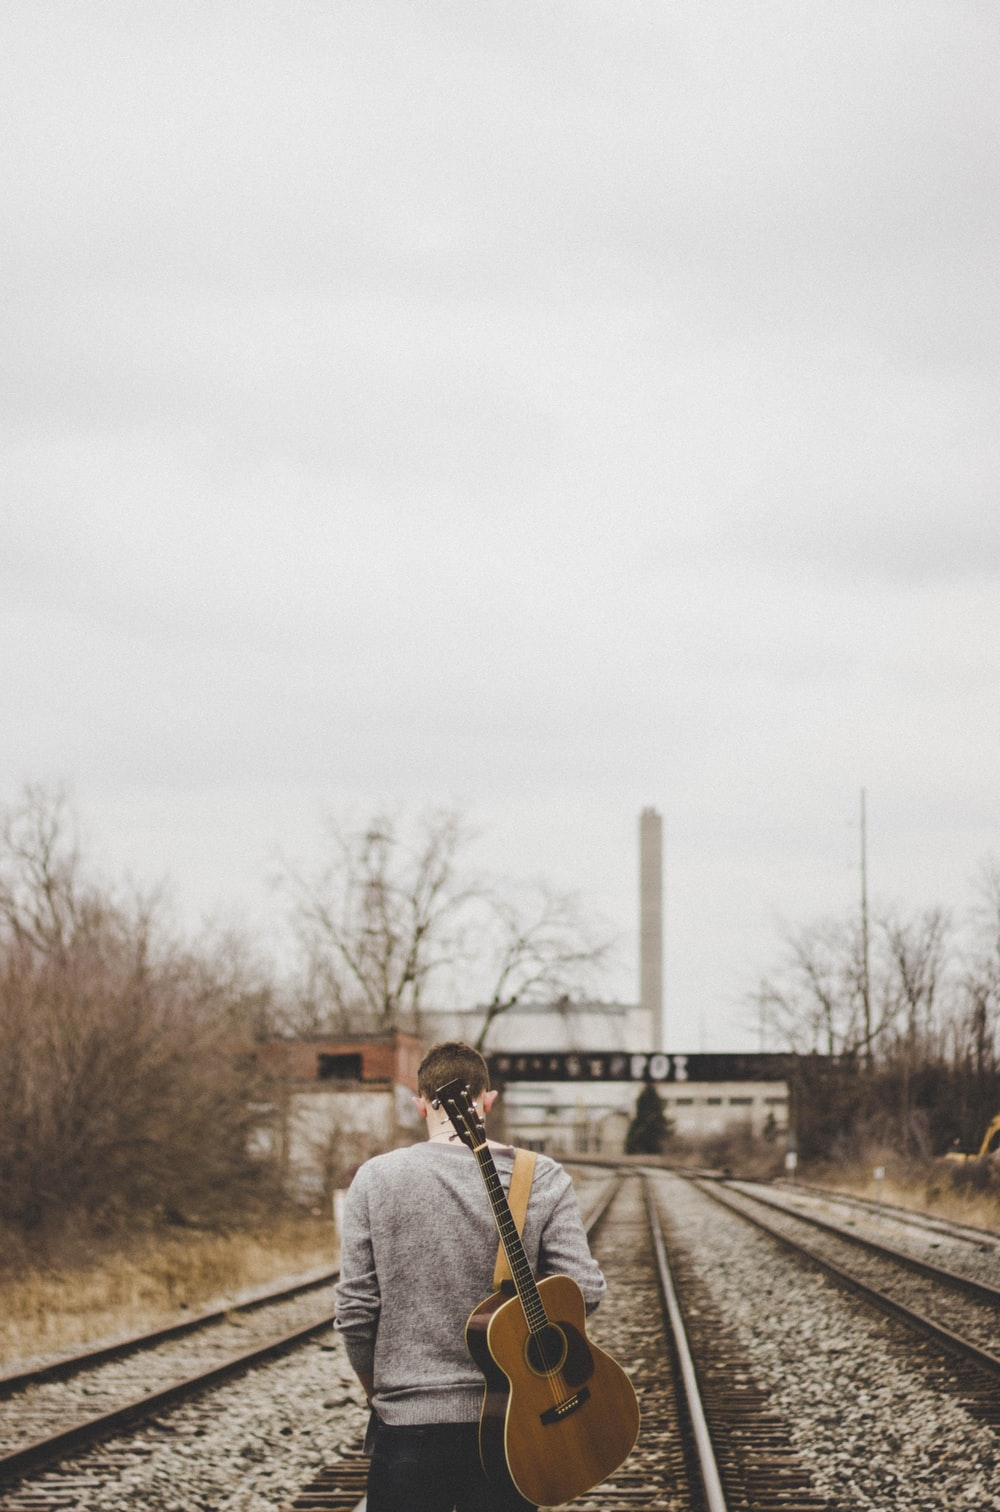 man carrying guitar walking on train rails